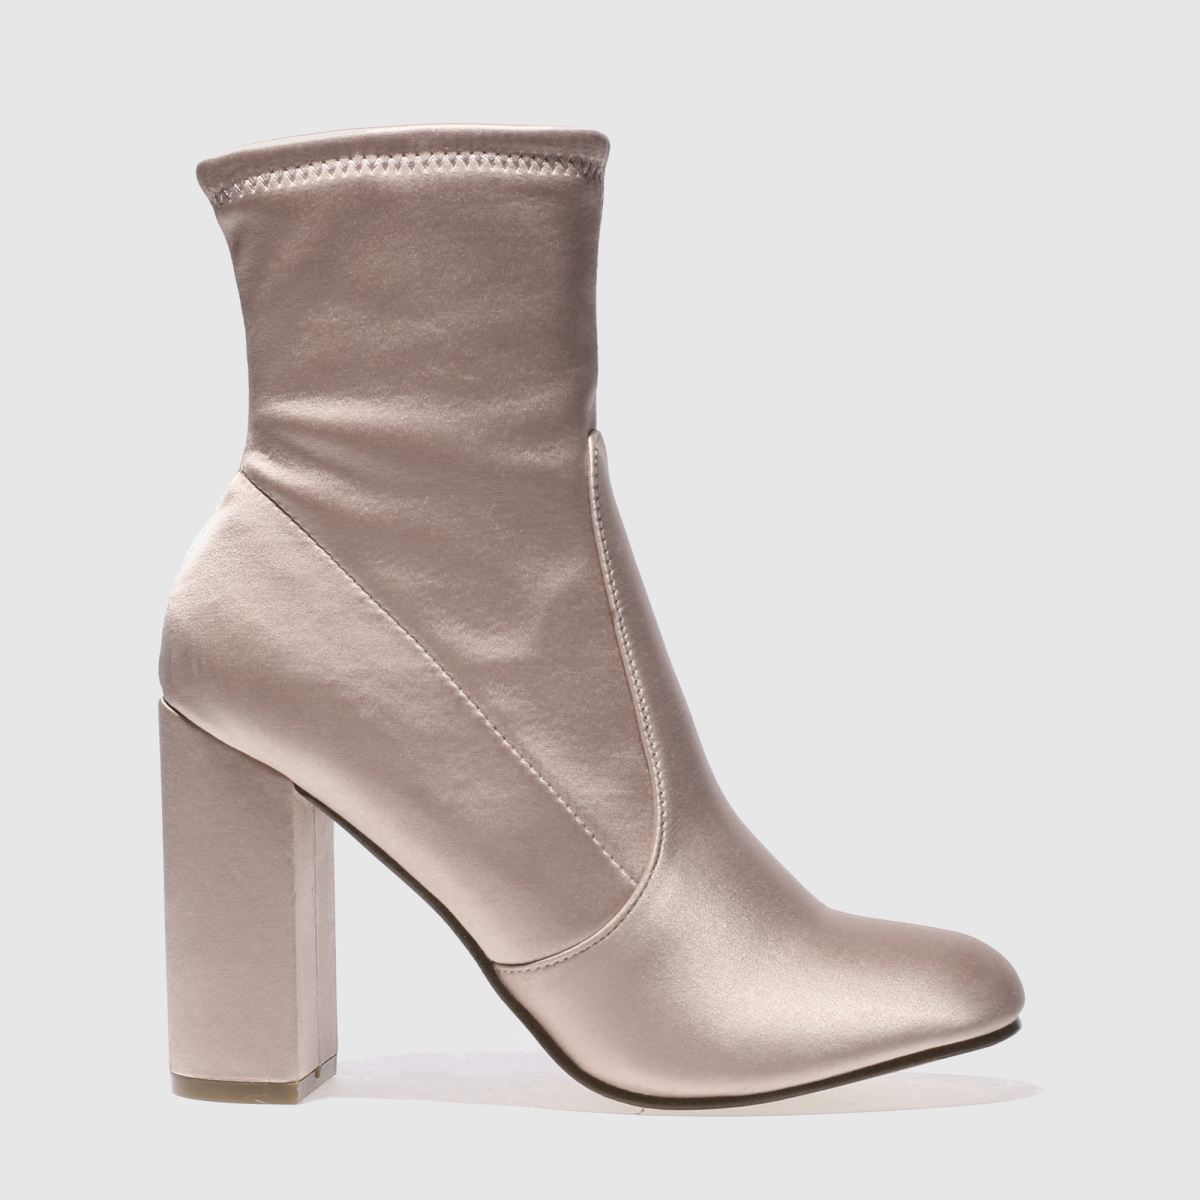 Schuh Pale Pink Refresh Boots